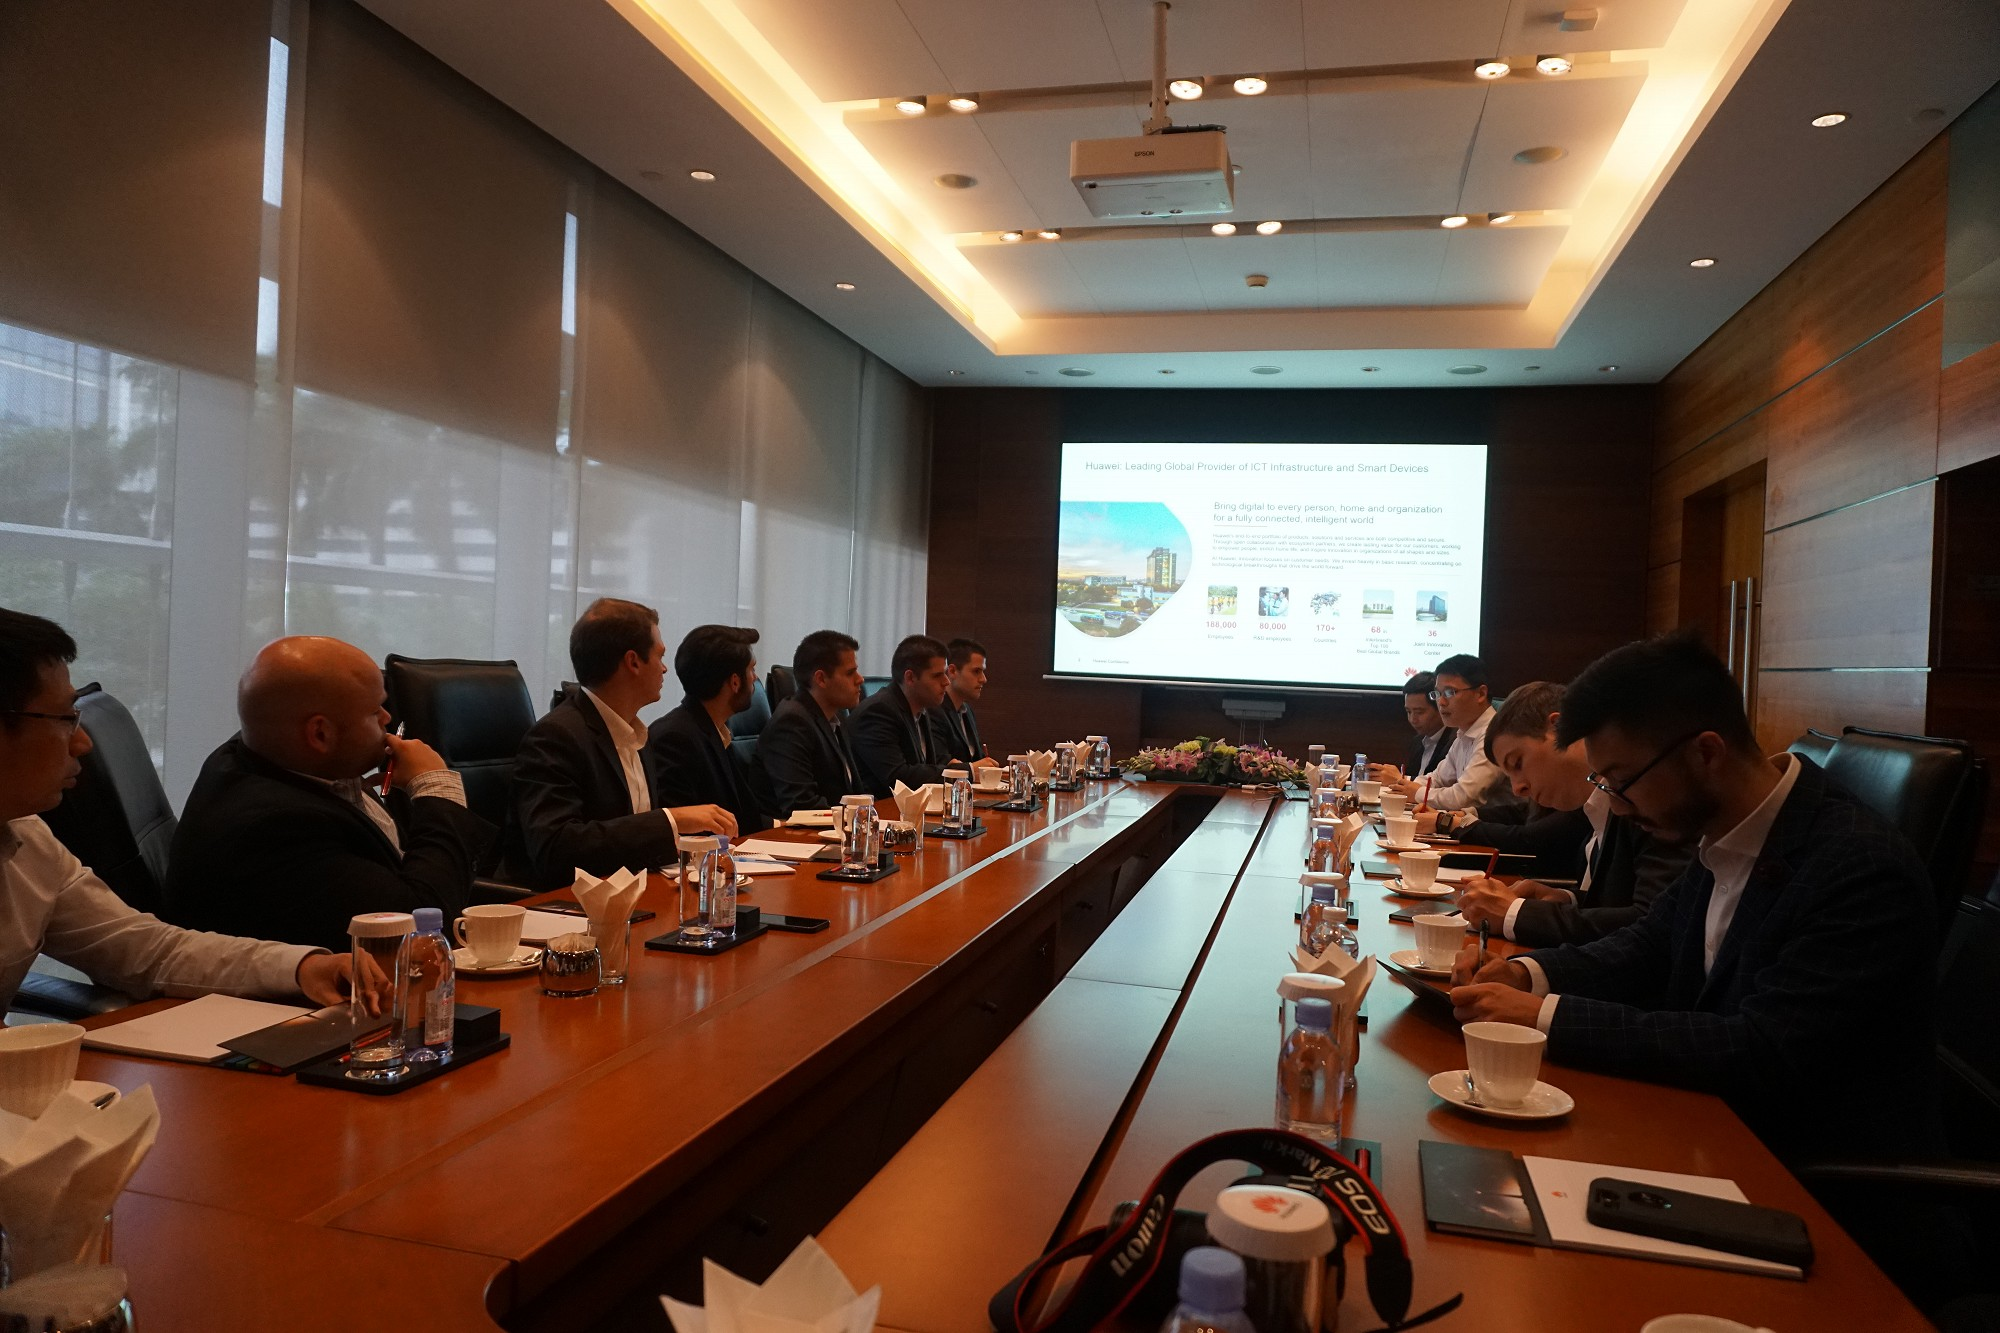 Meeting at Huawei's headquarter in Shenzhen